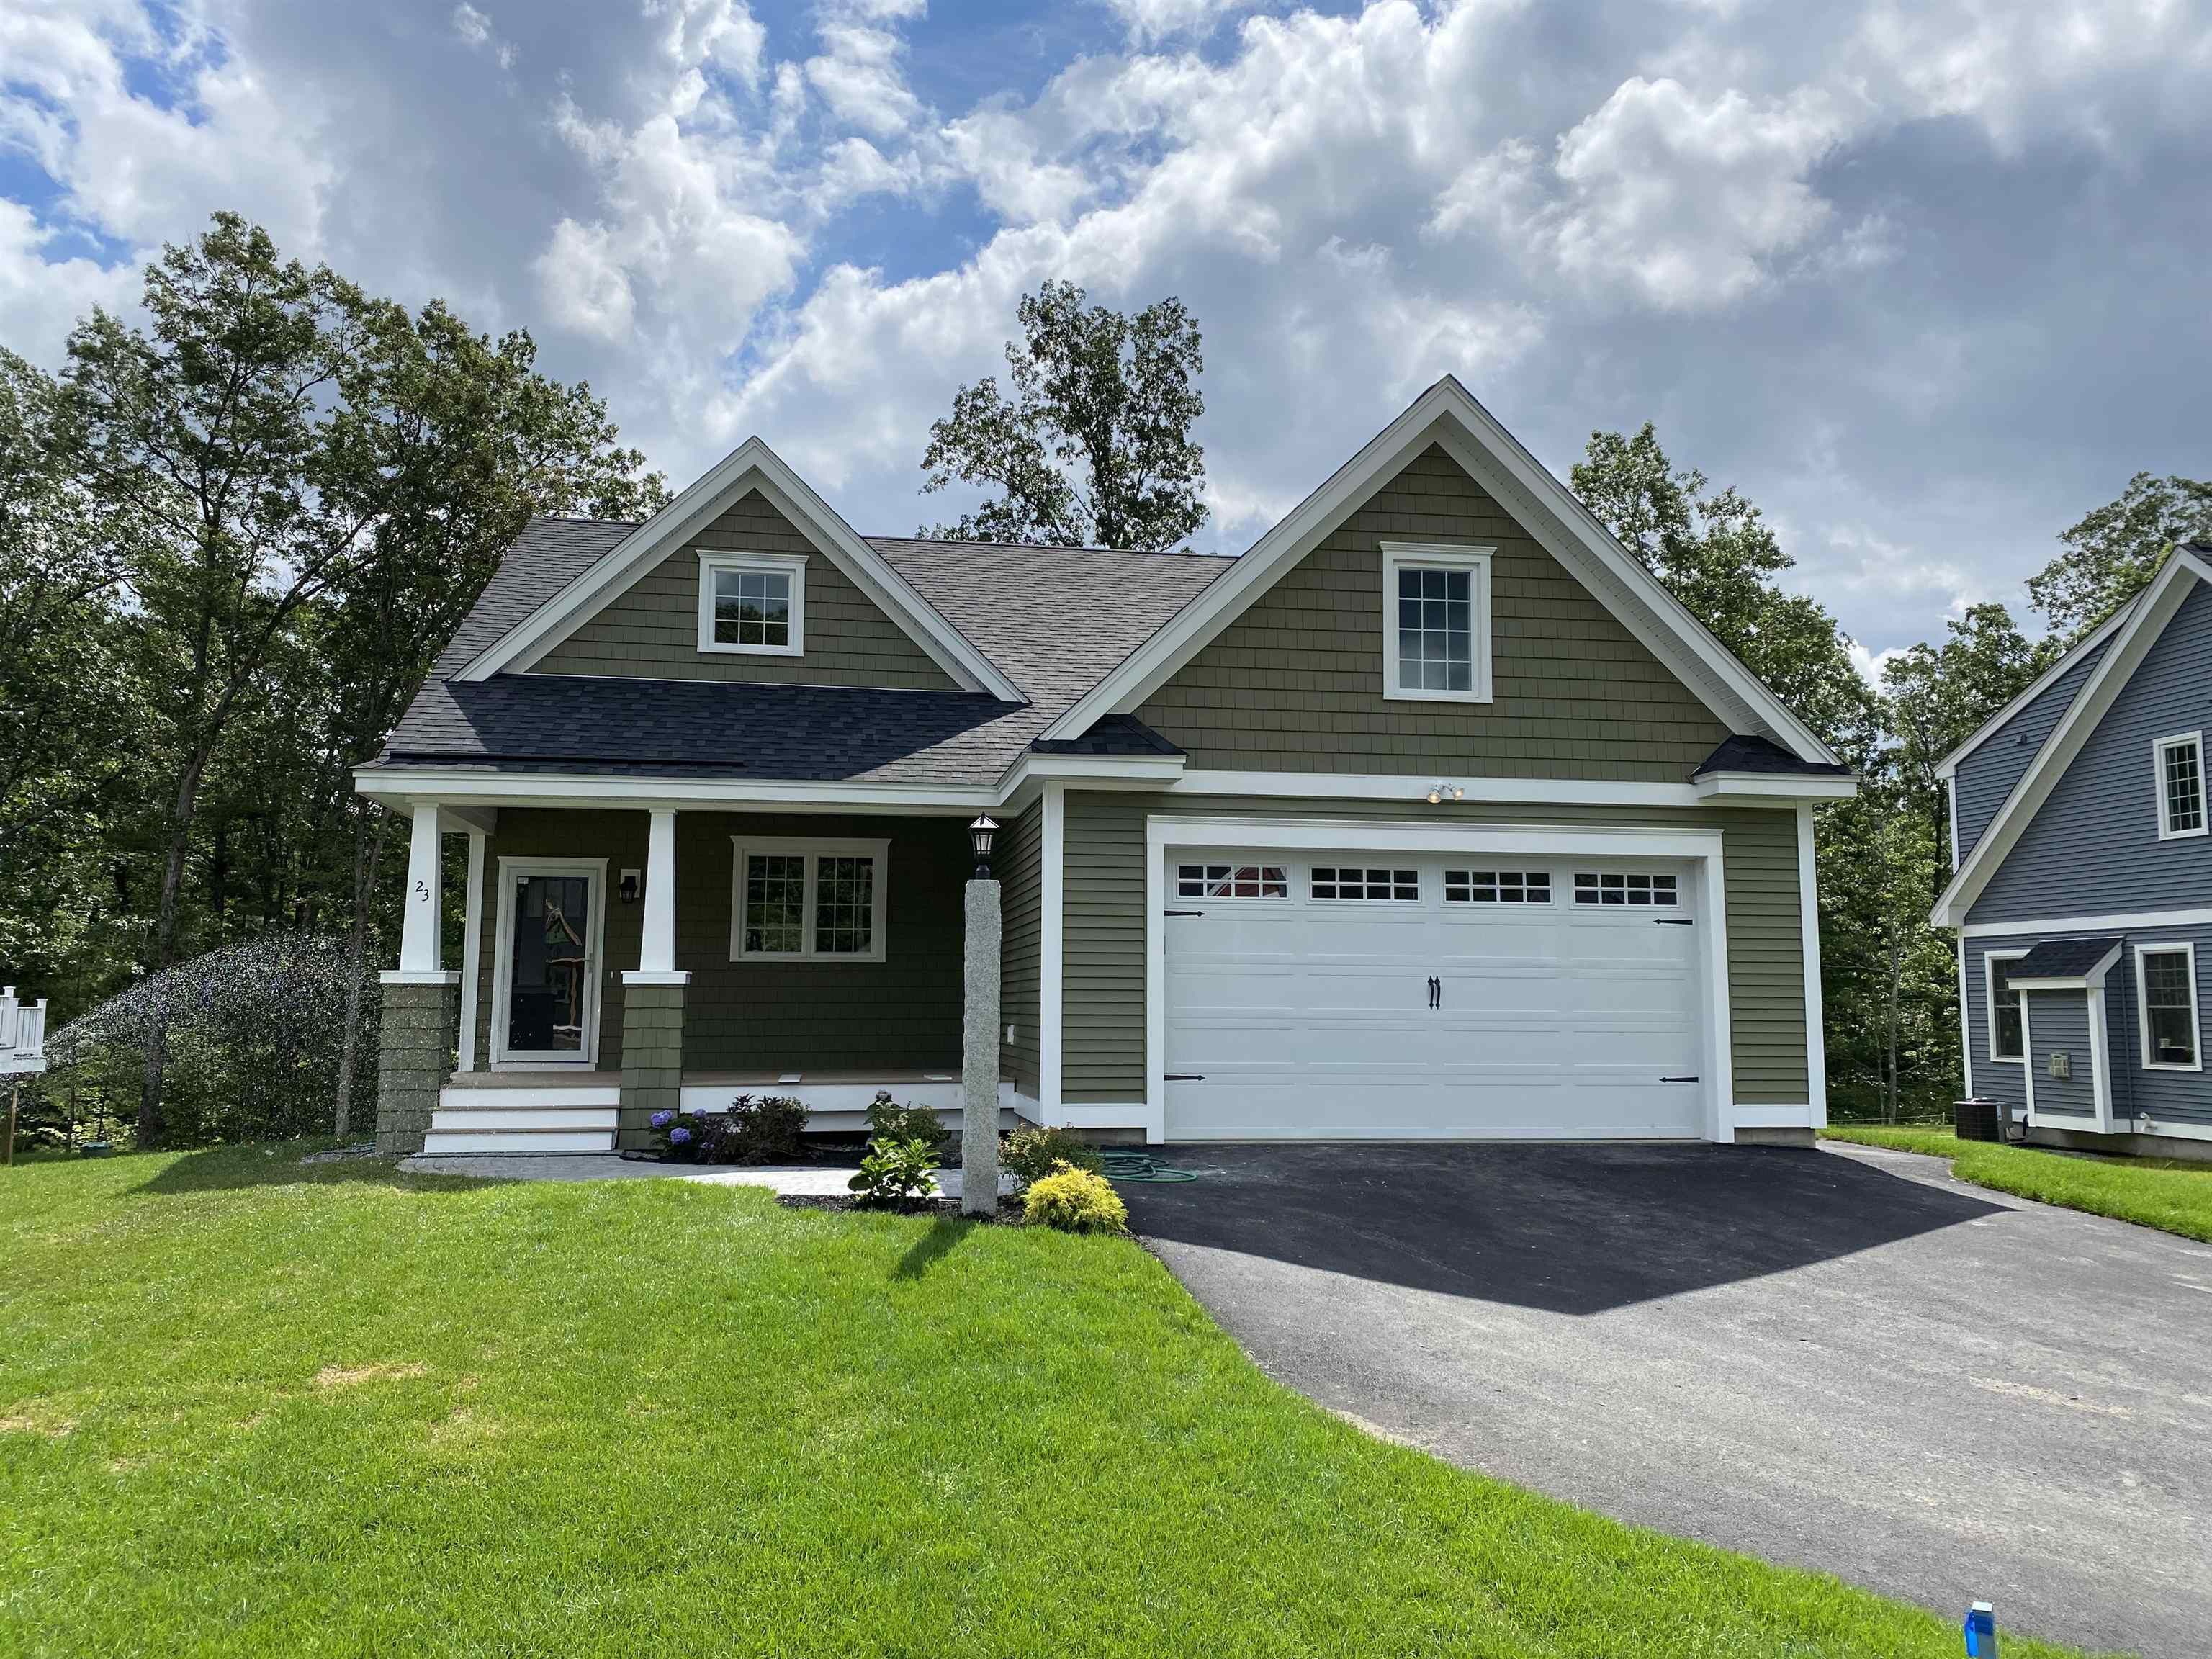 Photo of 23 Clover Lane Londonderry NH 03053